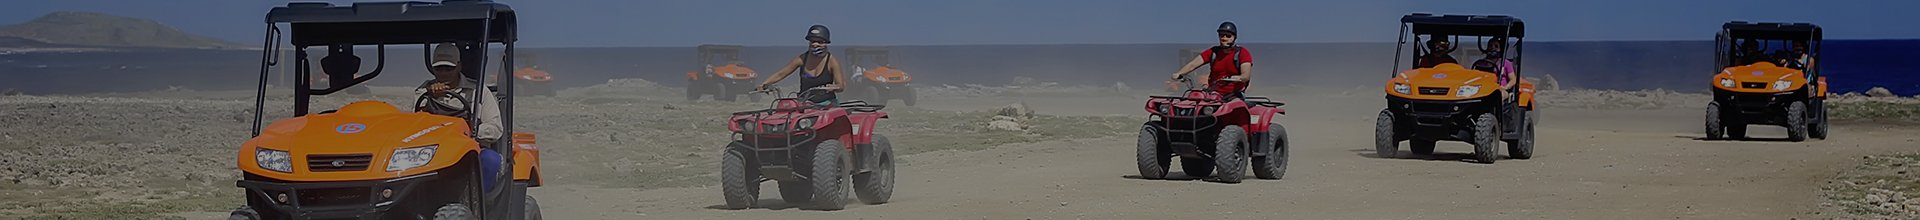 Aruba ATV Rental